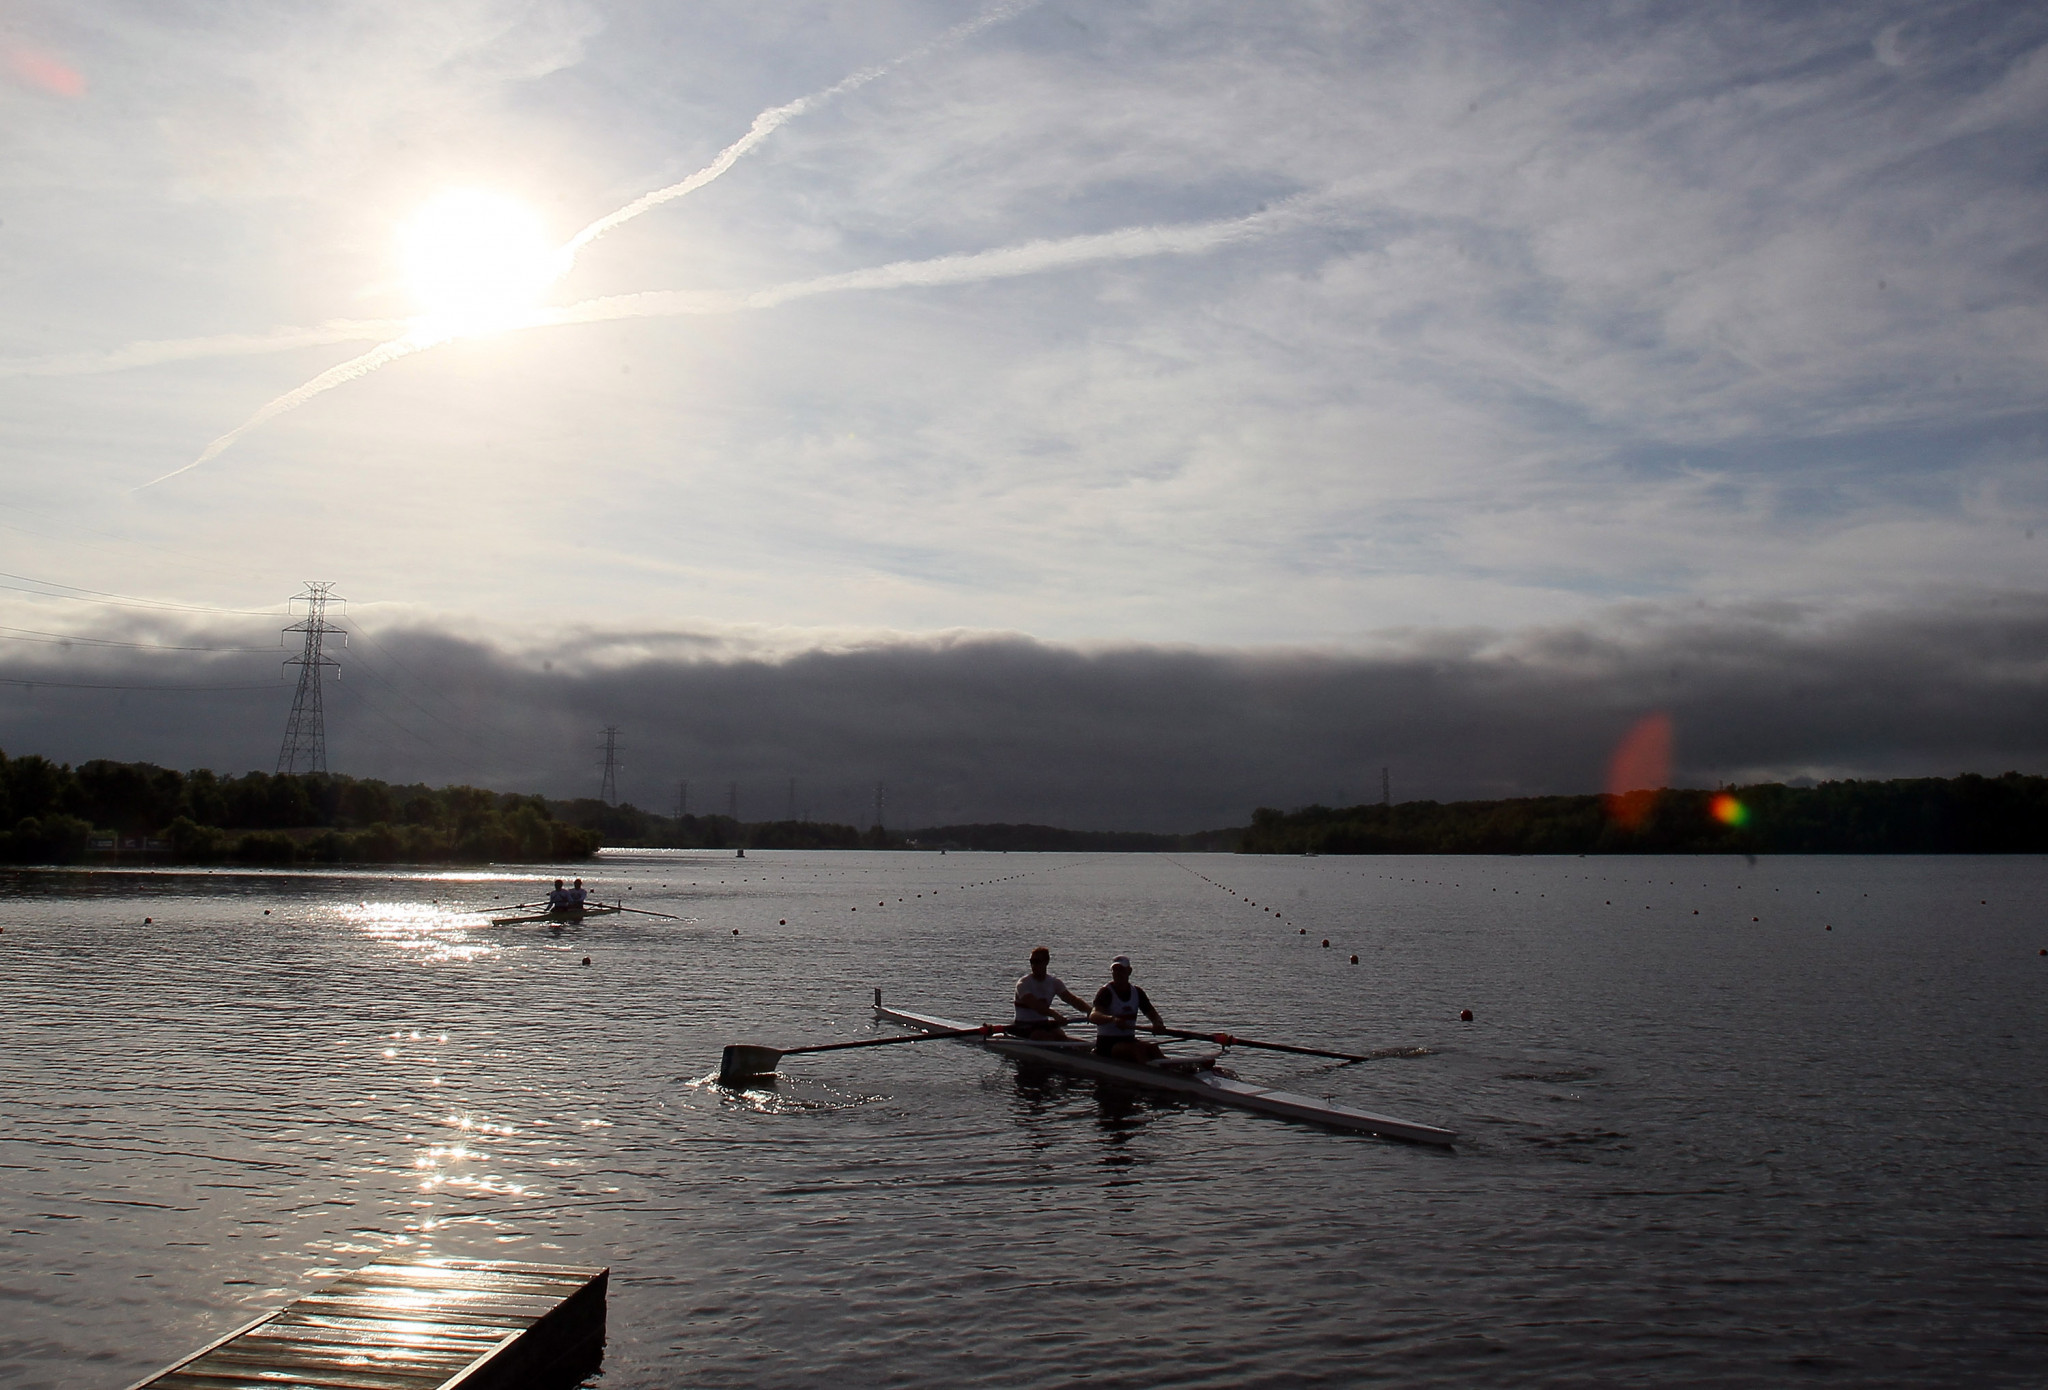 Second US Olympic and Paralympic rowing trials underway